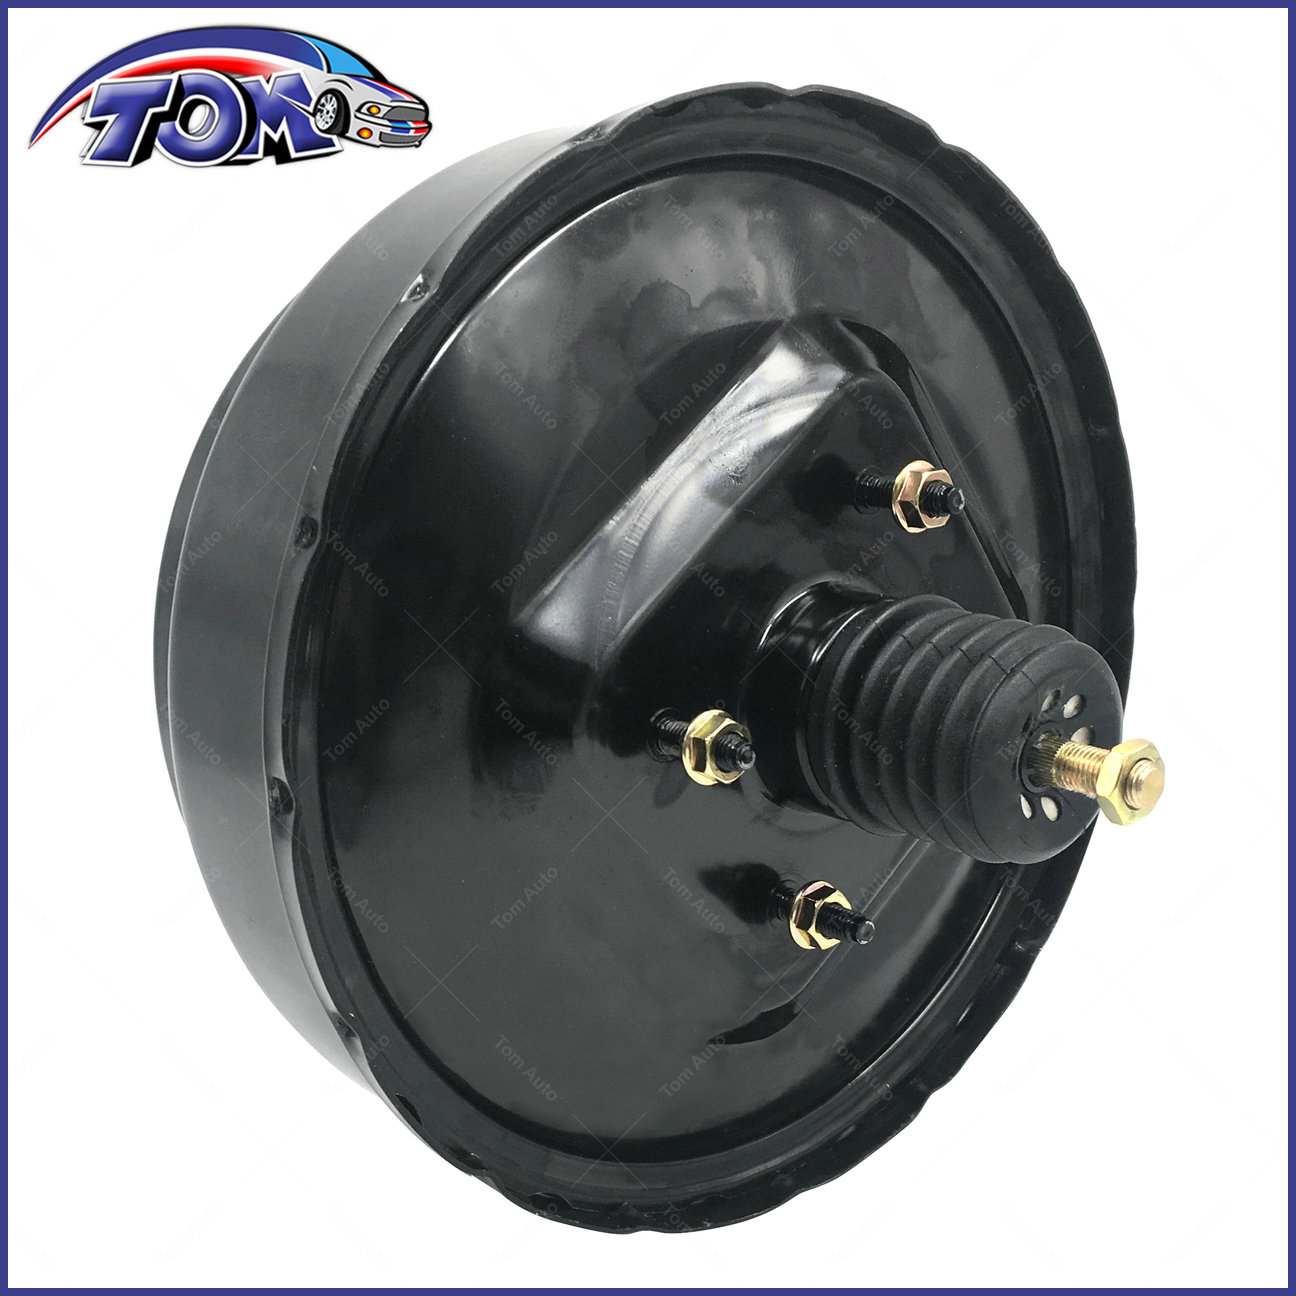 hight resolution of details about new power brake booster for chevrolet isuzu gmc